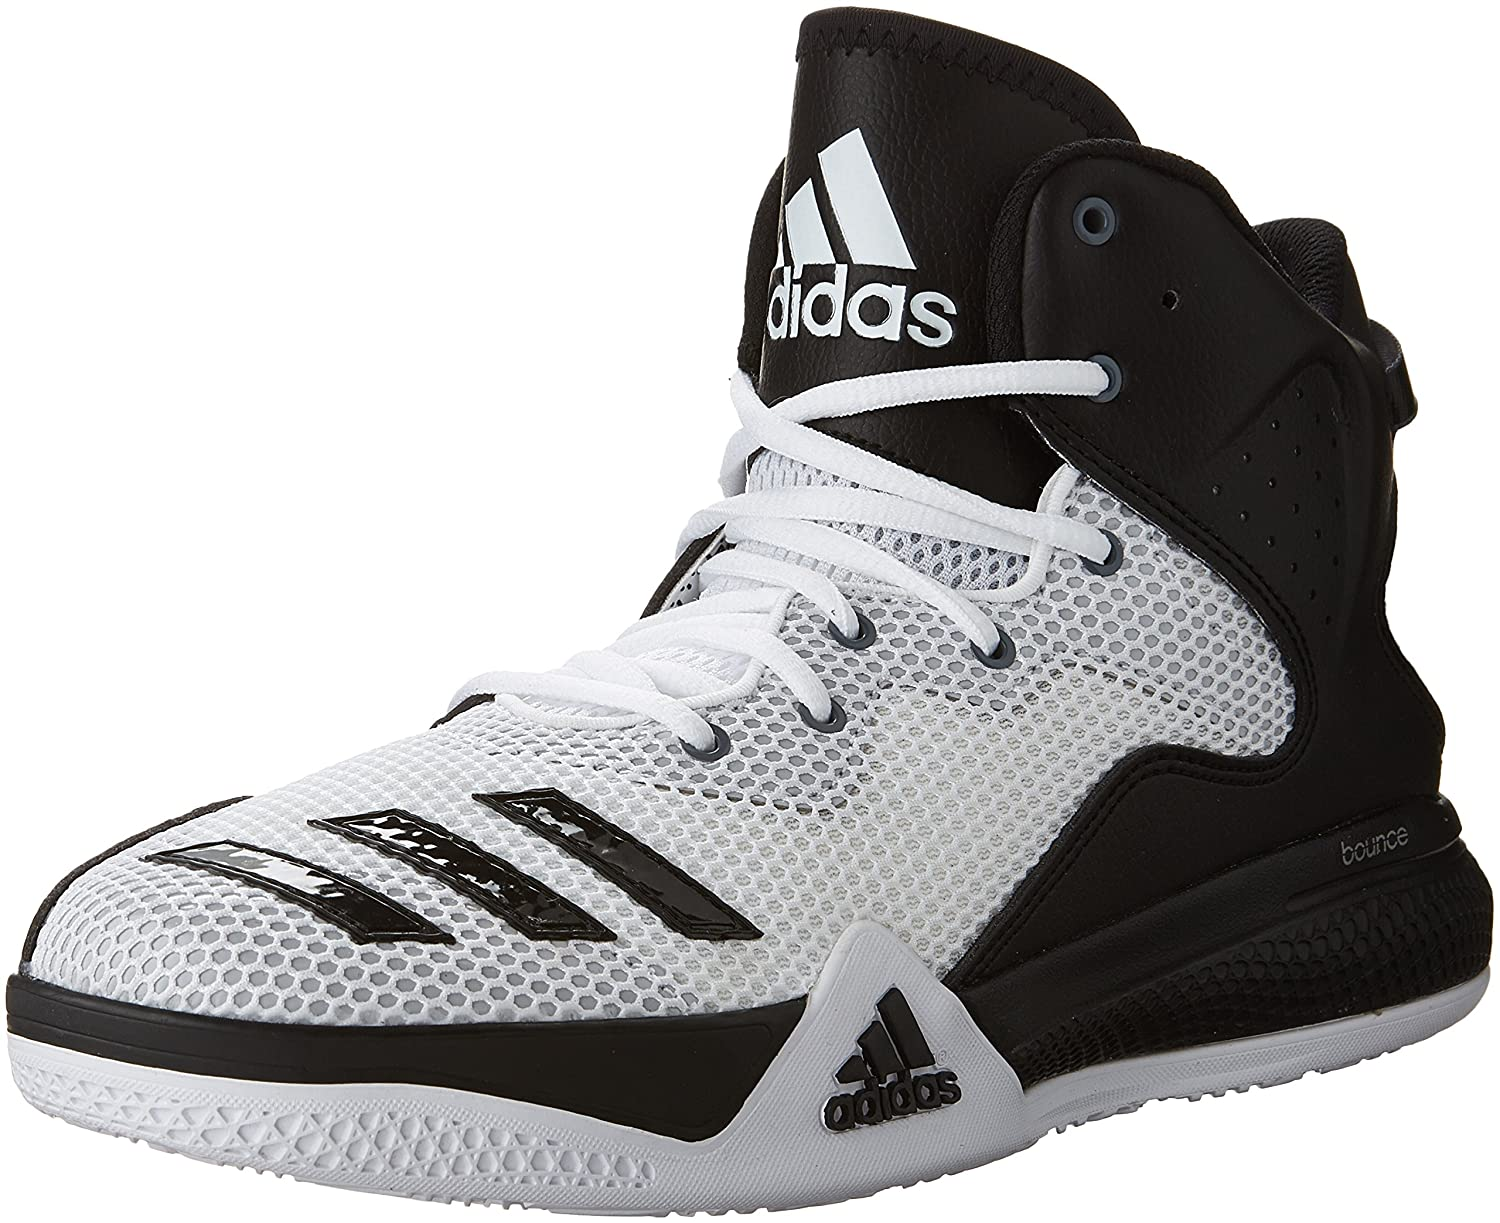 adidas Performance Men\u0027s DT Bball Mid Basketball Shoe